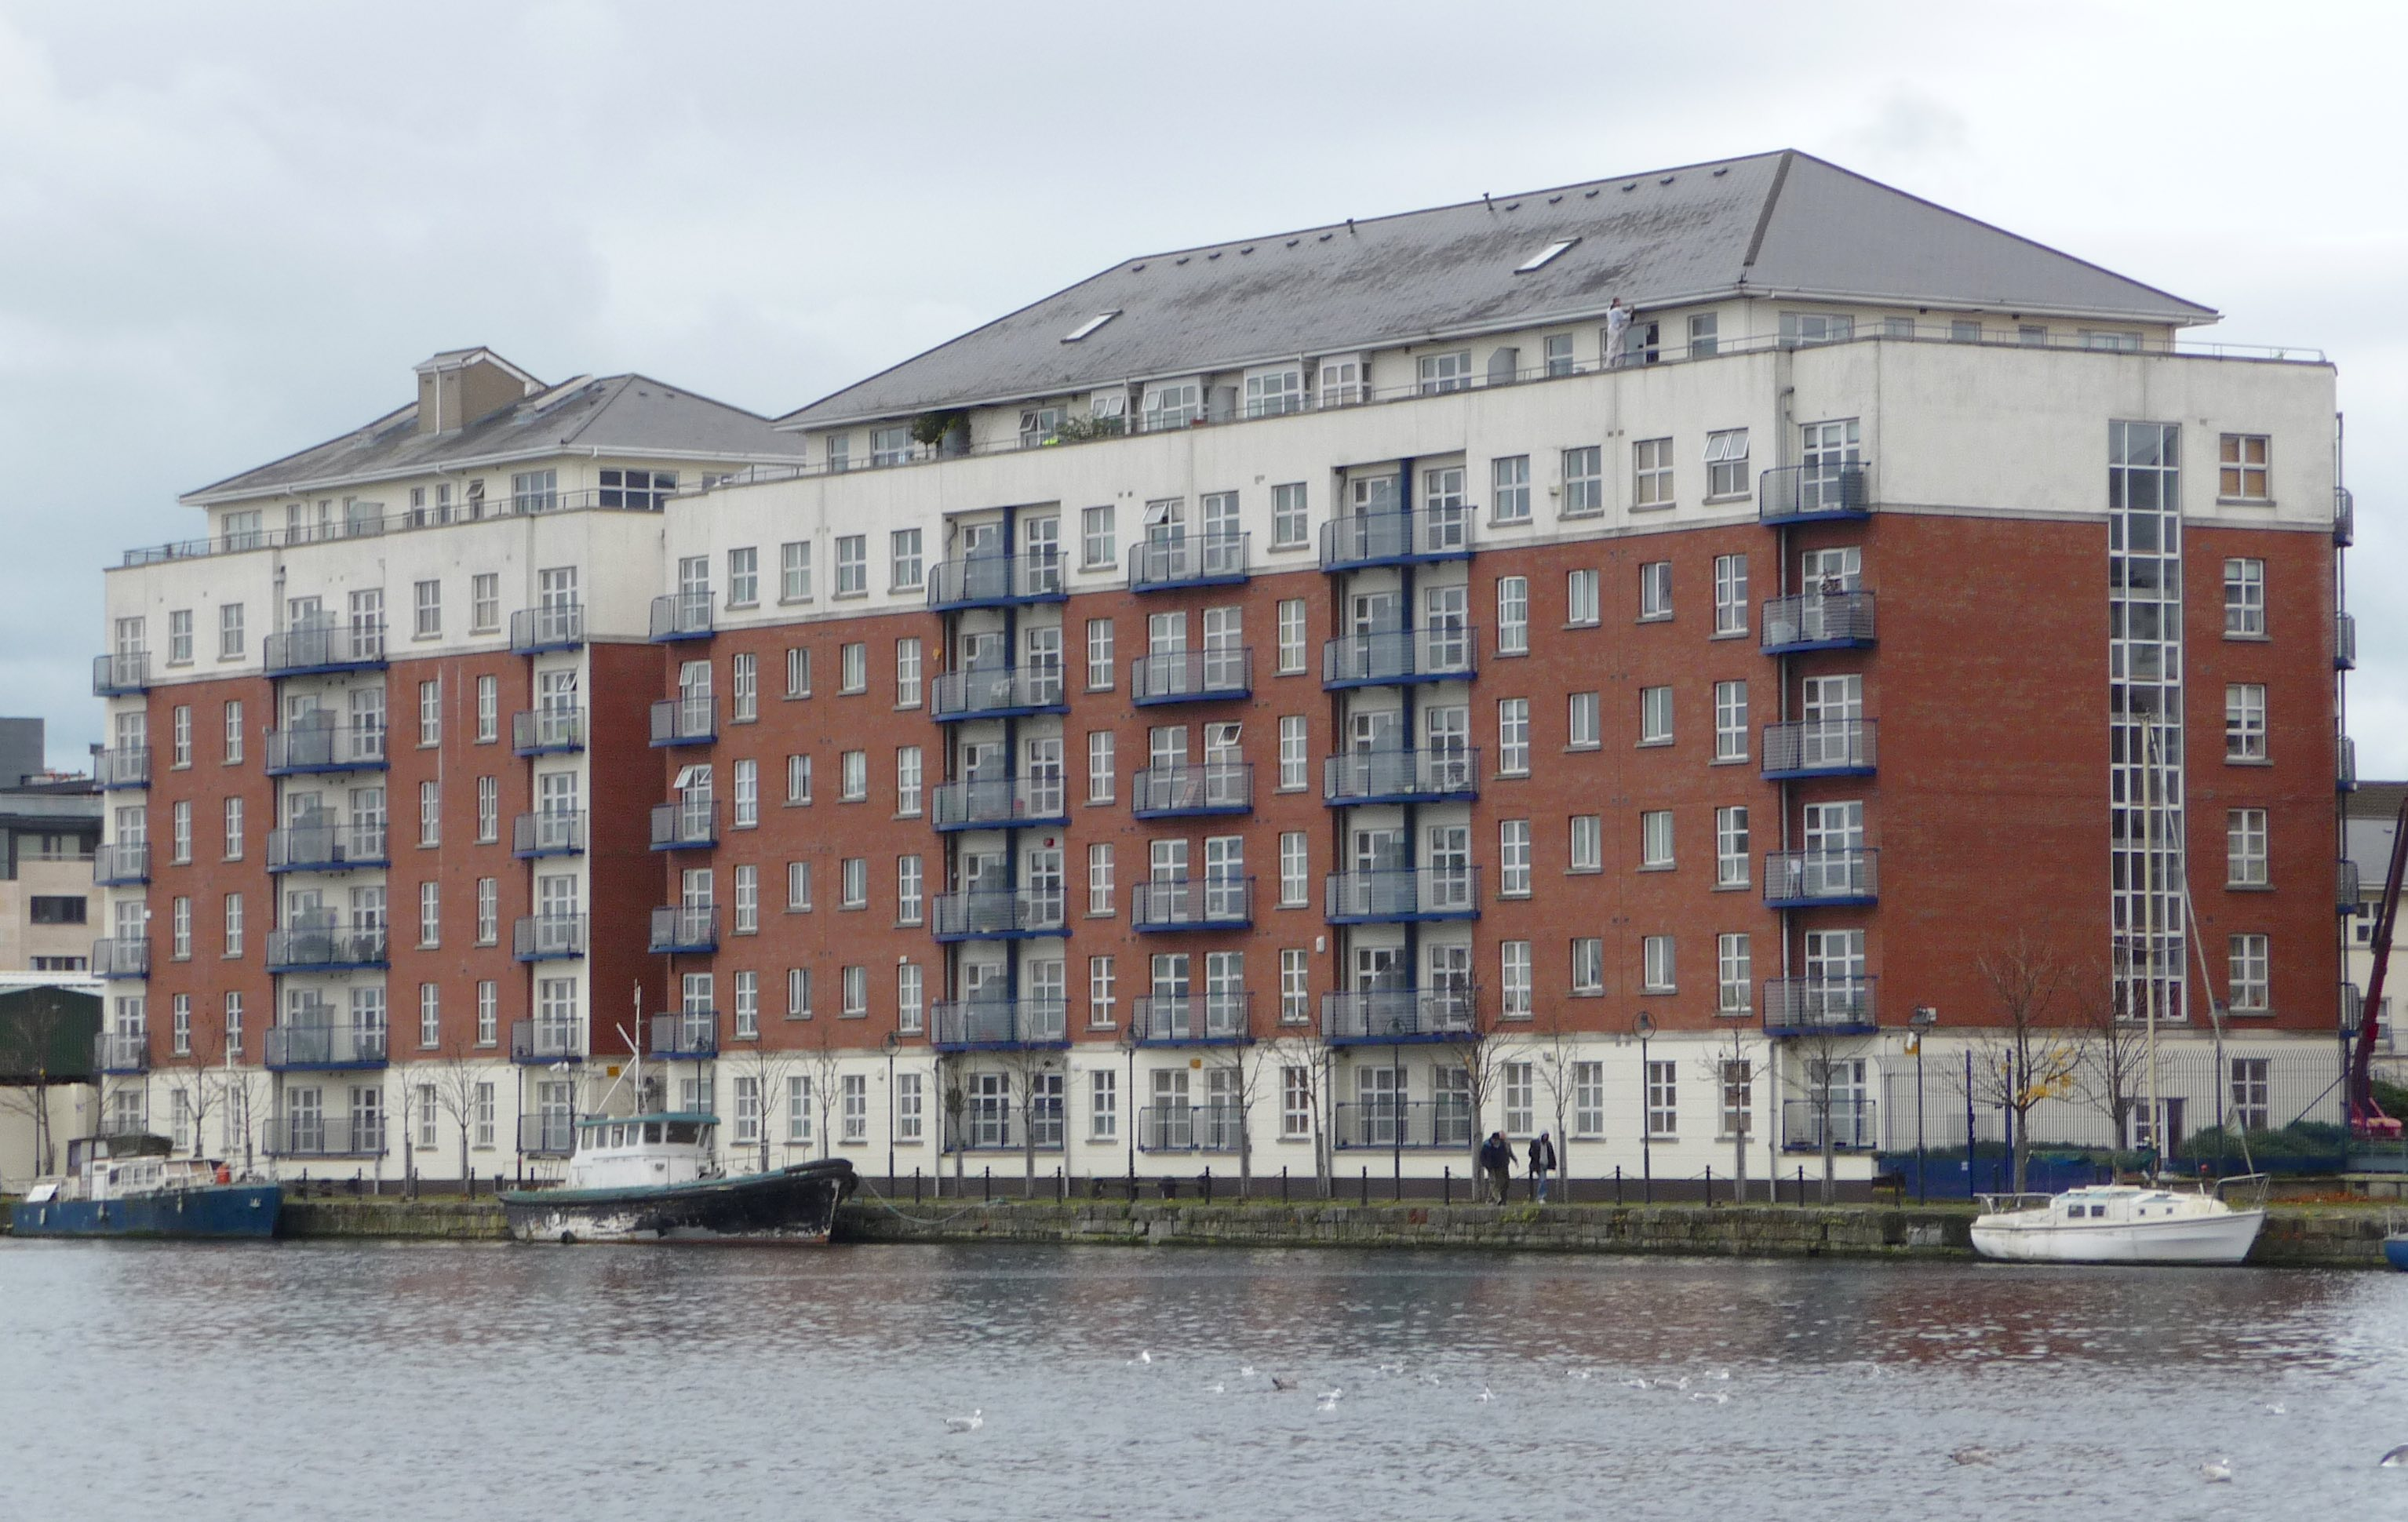 7.Grand Canal Docks